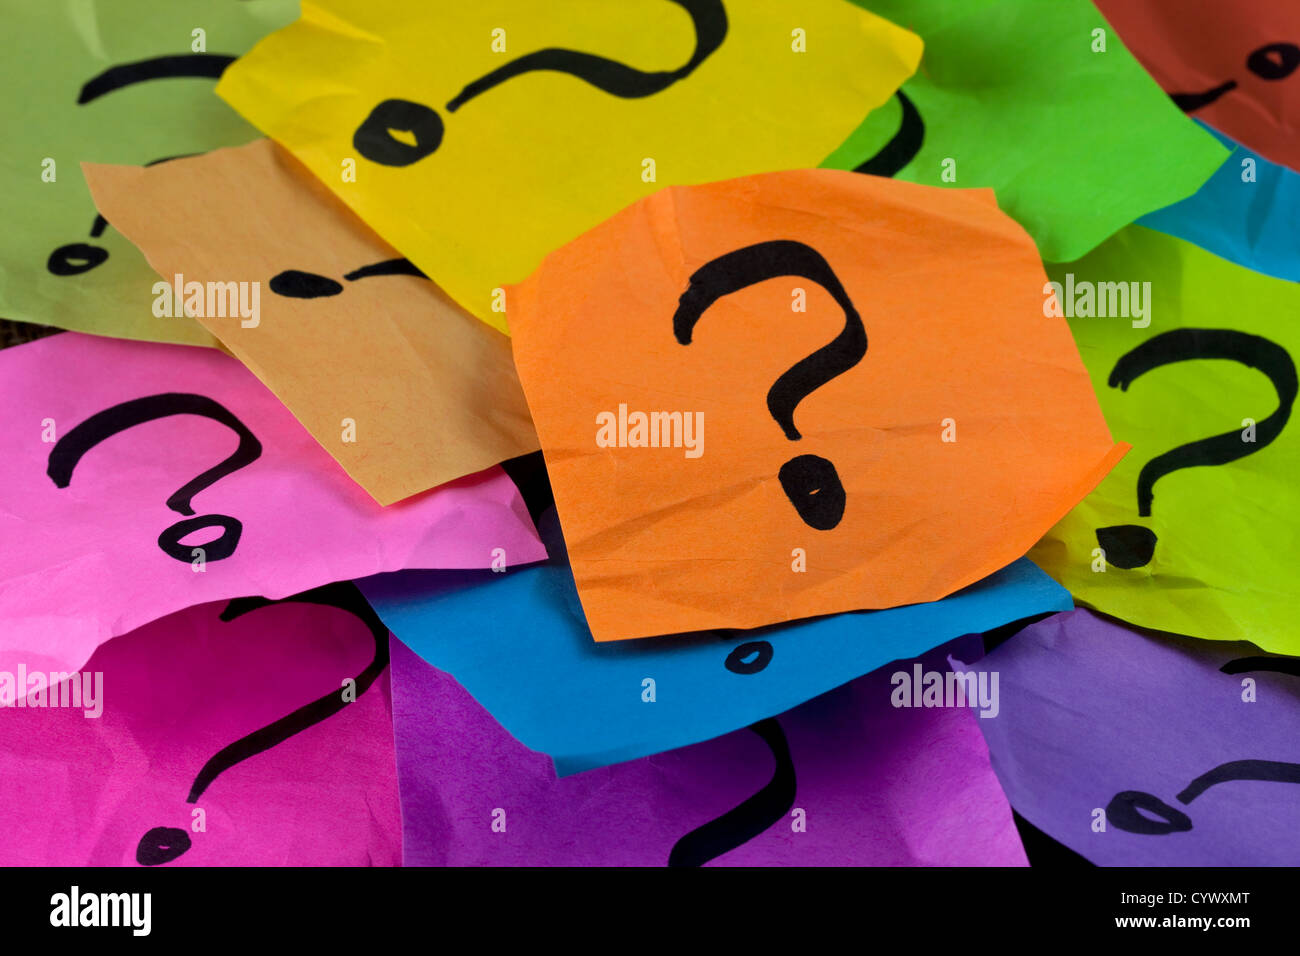 questions, decision making or uncertainty concept - a pile of colorful crumpled sticky notes with question marks - Stock Image